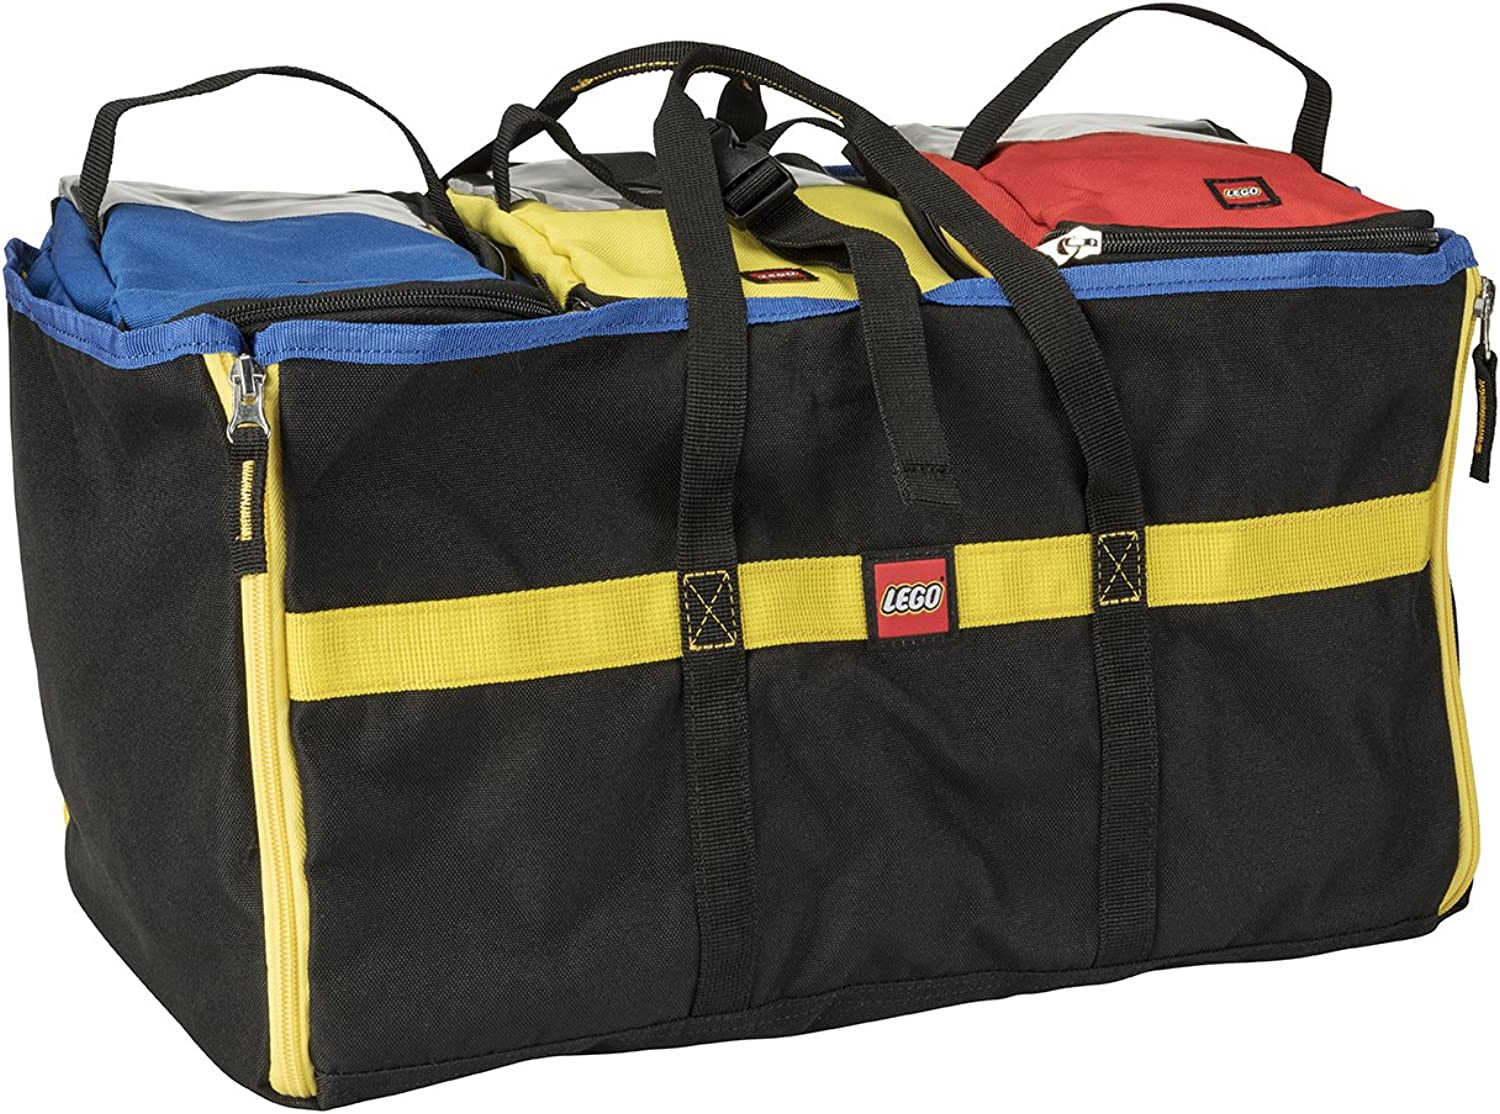 LEGO 4Piece Tote and Play Mat, Multi